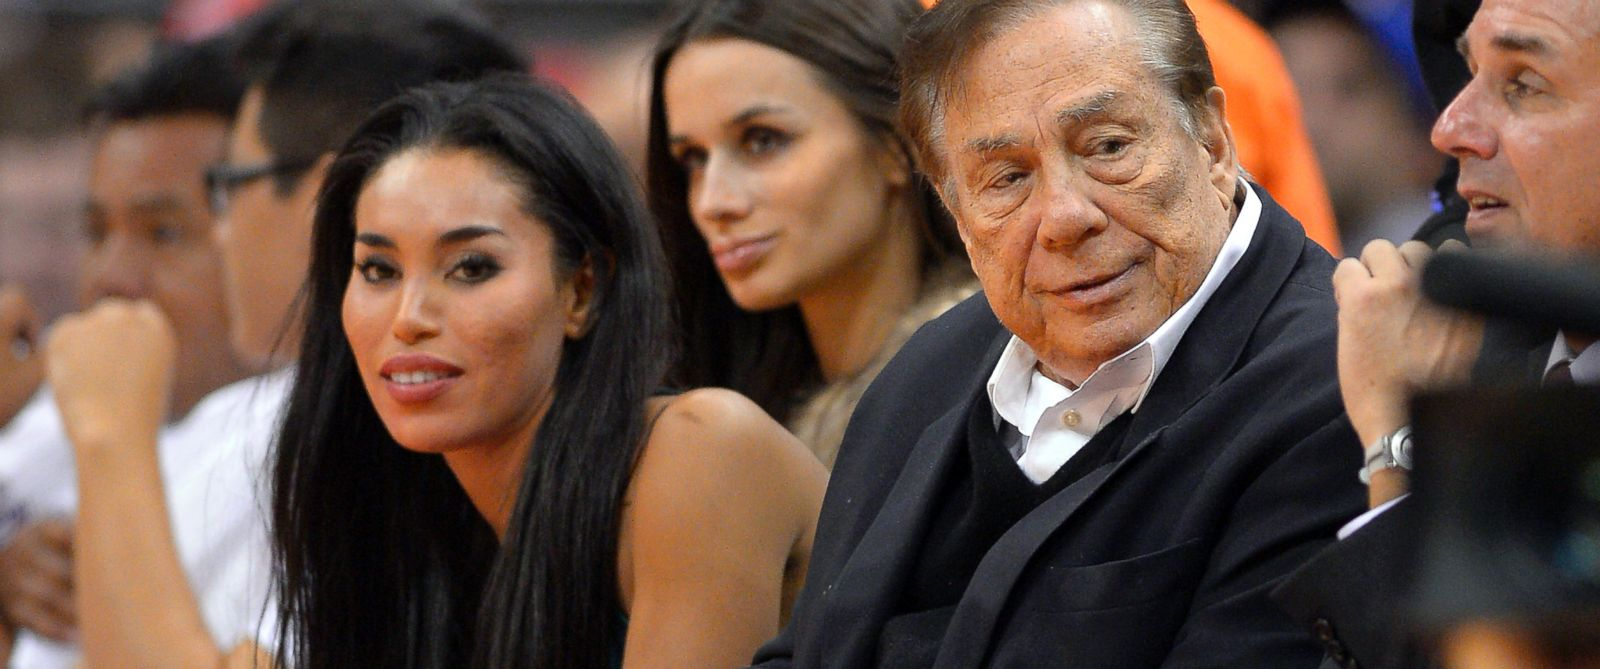 PHOTO: In this photo taken on Friday, Oct. 25, 2013, Los Angeles Clippers owner Donald Sterling, right, and V. Stiviano, left, watch the Clippers play the Sacramento Kings in Los Angeles.